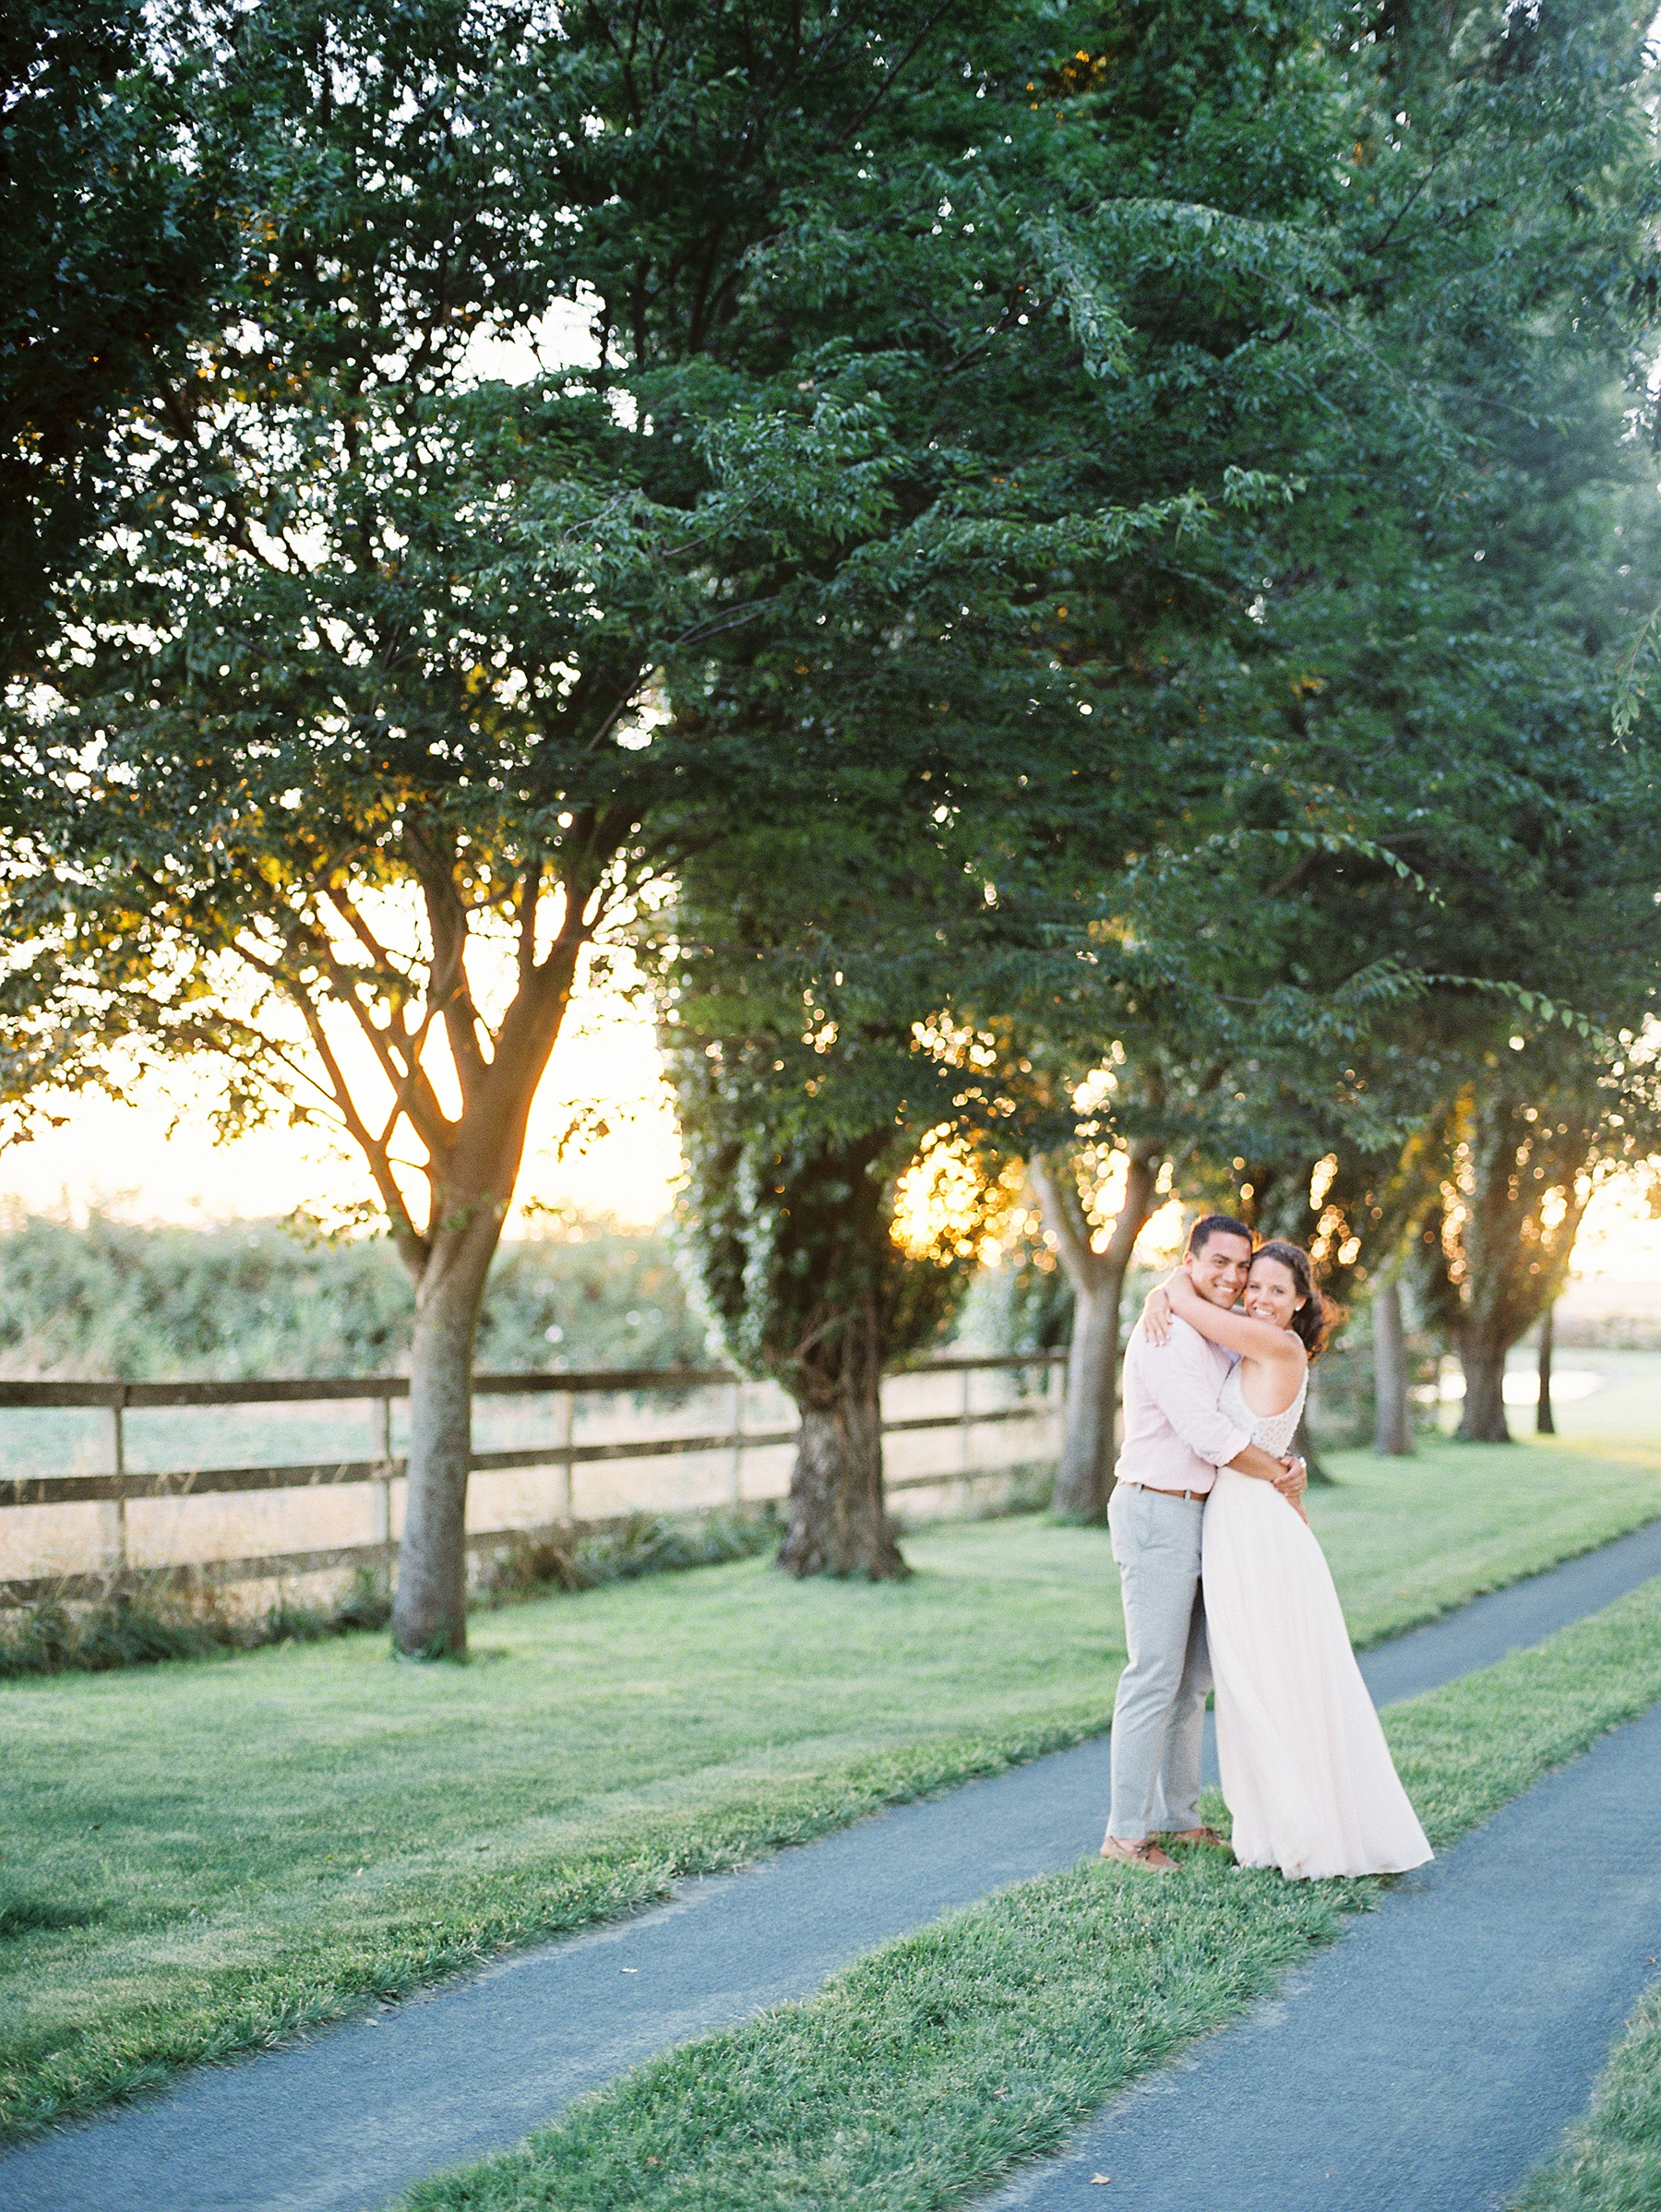 Sacramento Backyard Wedding Photographer - Sarah Maren Photography